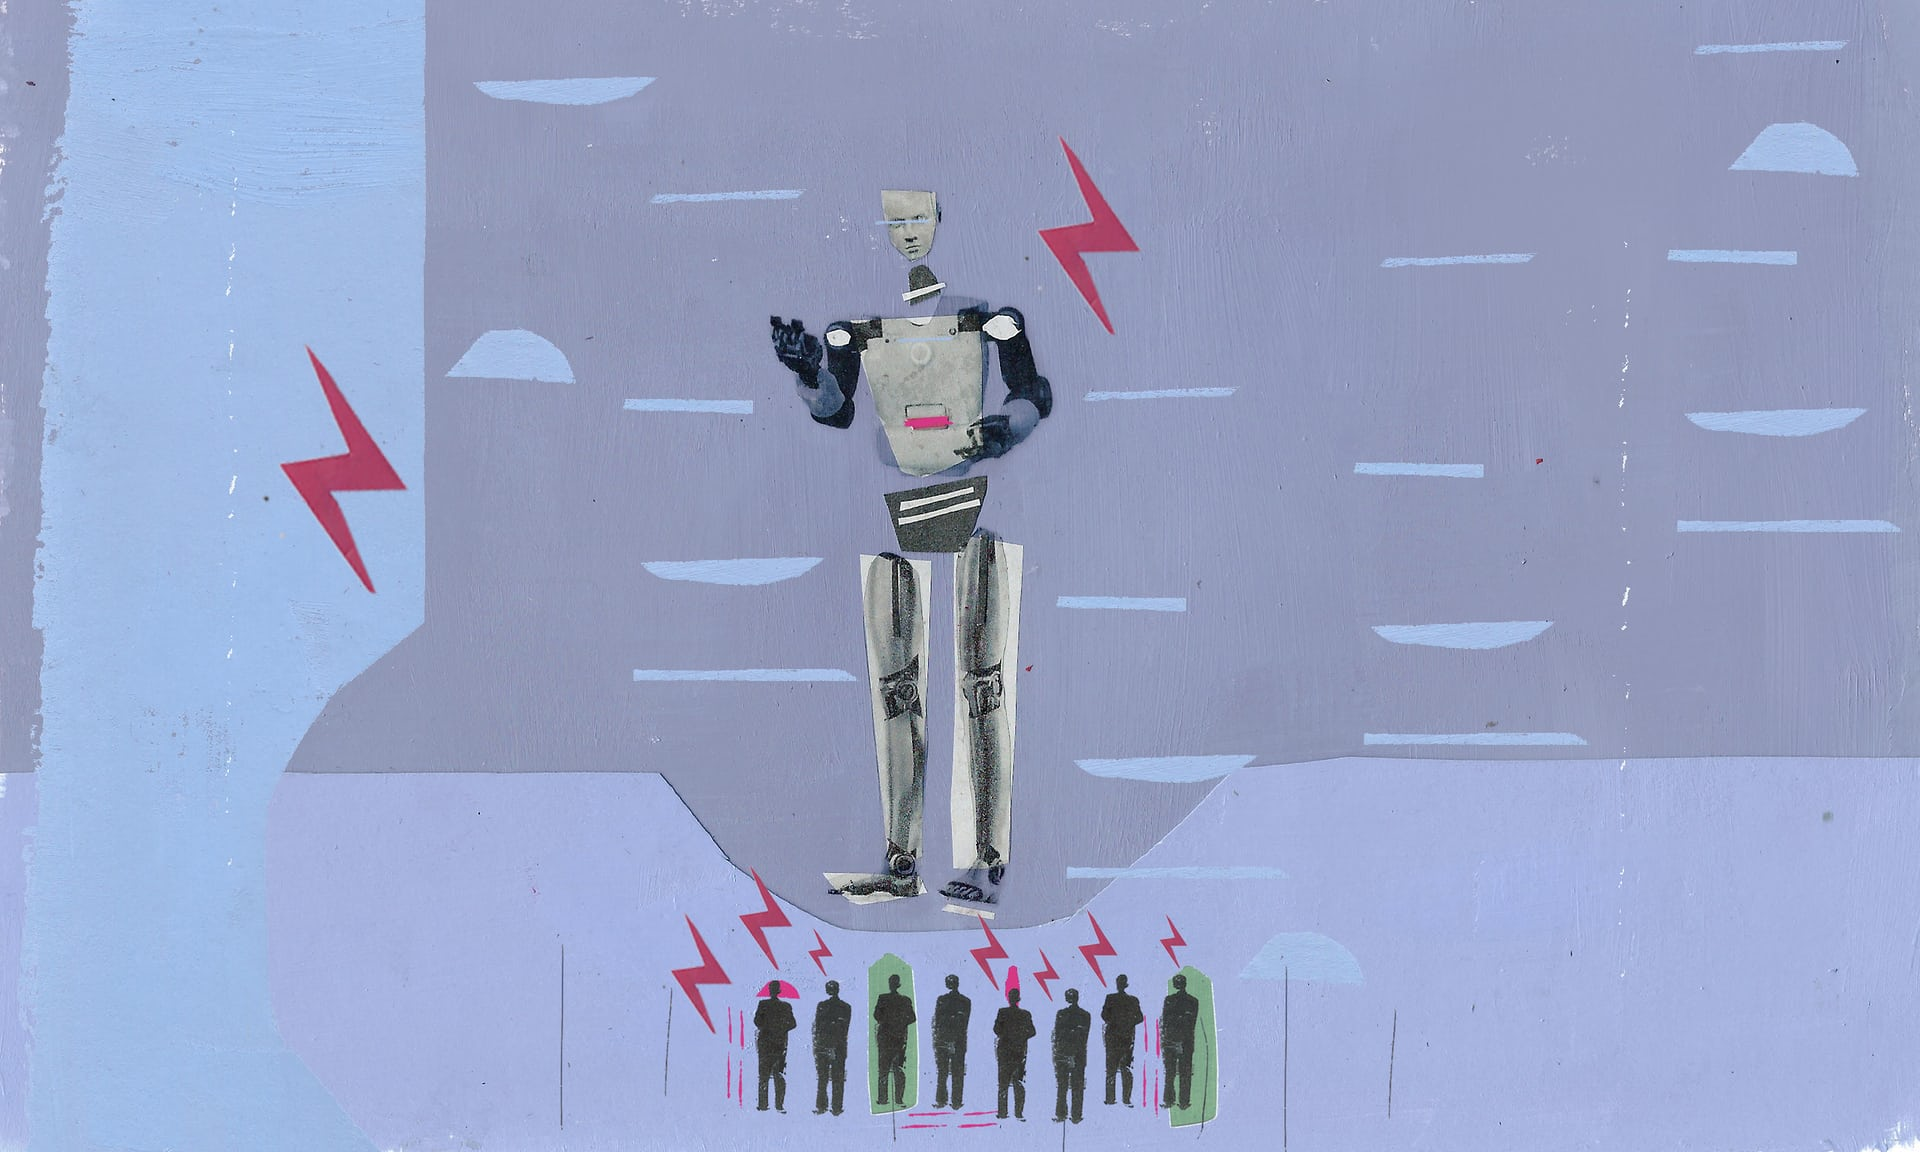 Automation Is a Real Threat. How Can We Slow Down the March of the Cyborgs?